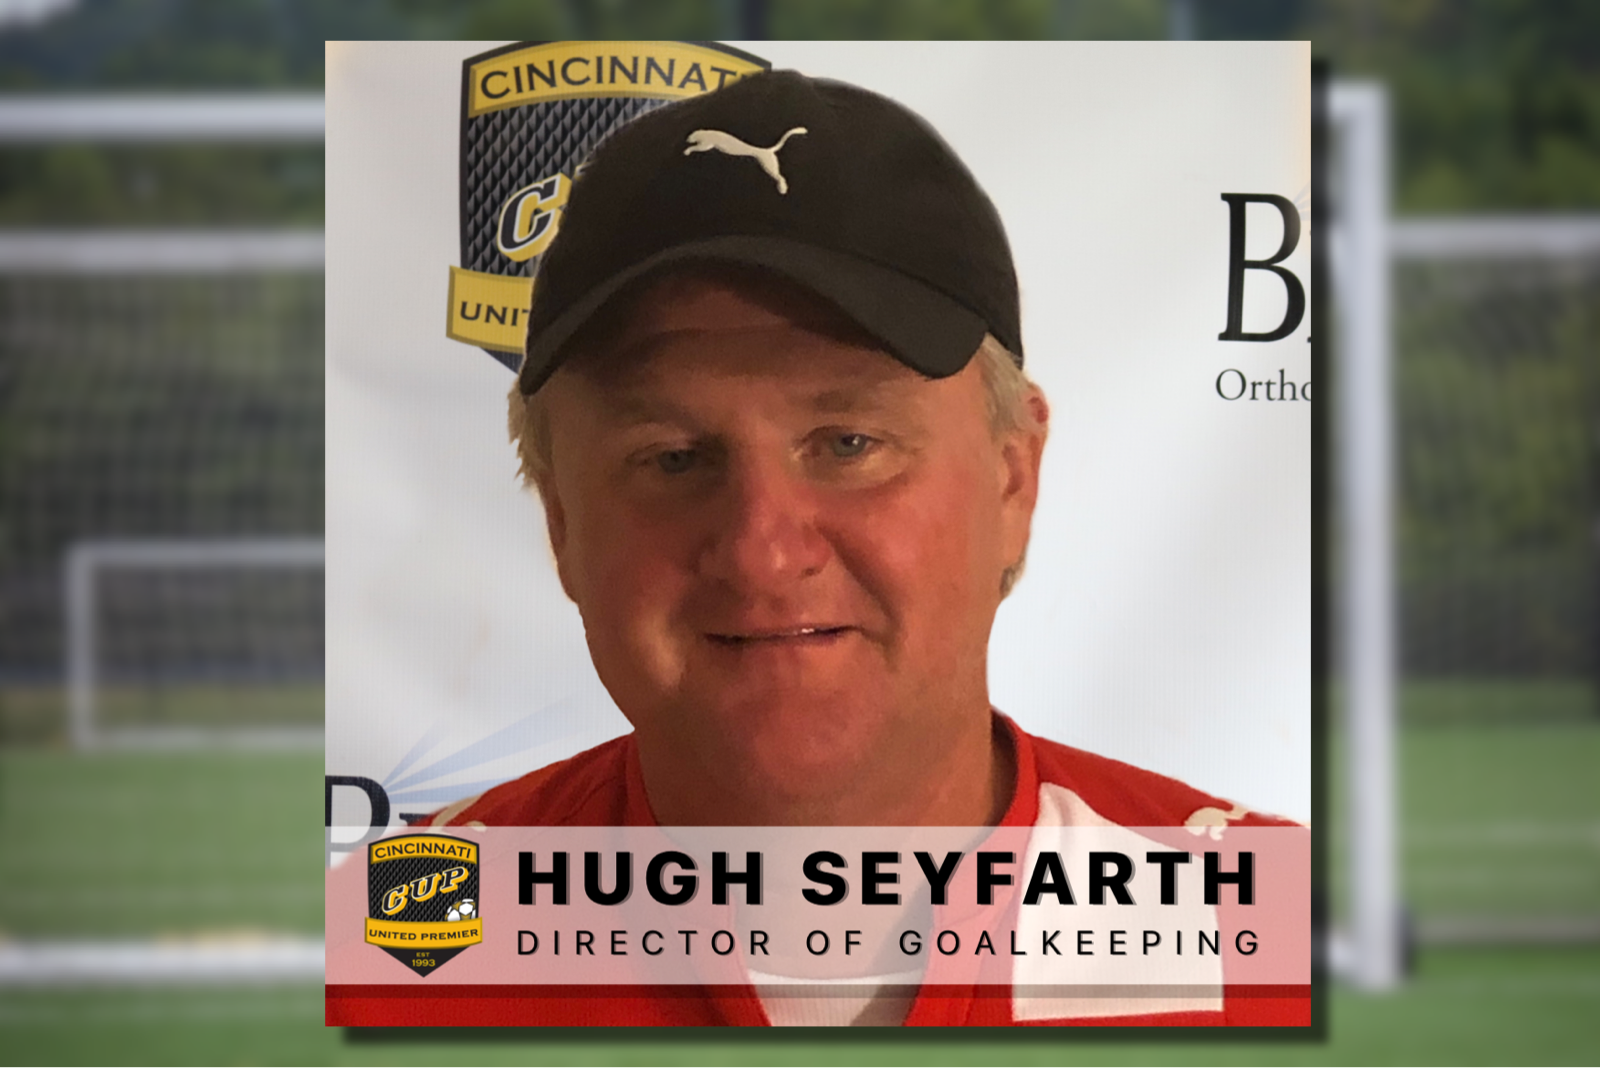 CU Announces Hugh Seyfarth as New Director of Goalkeeping